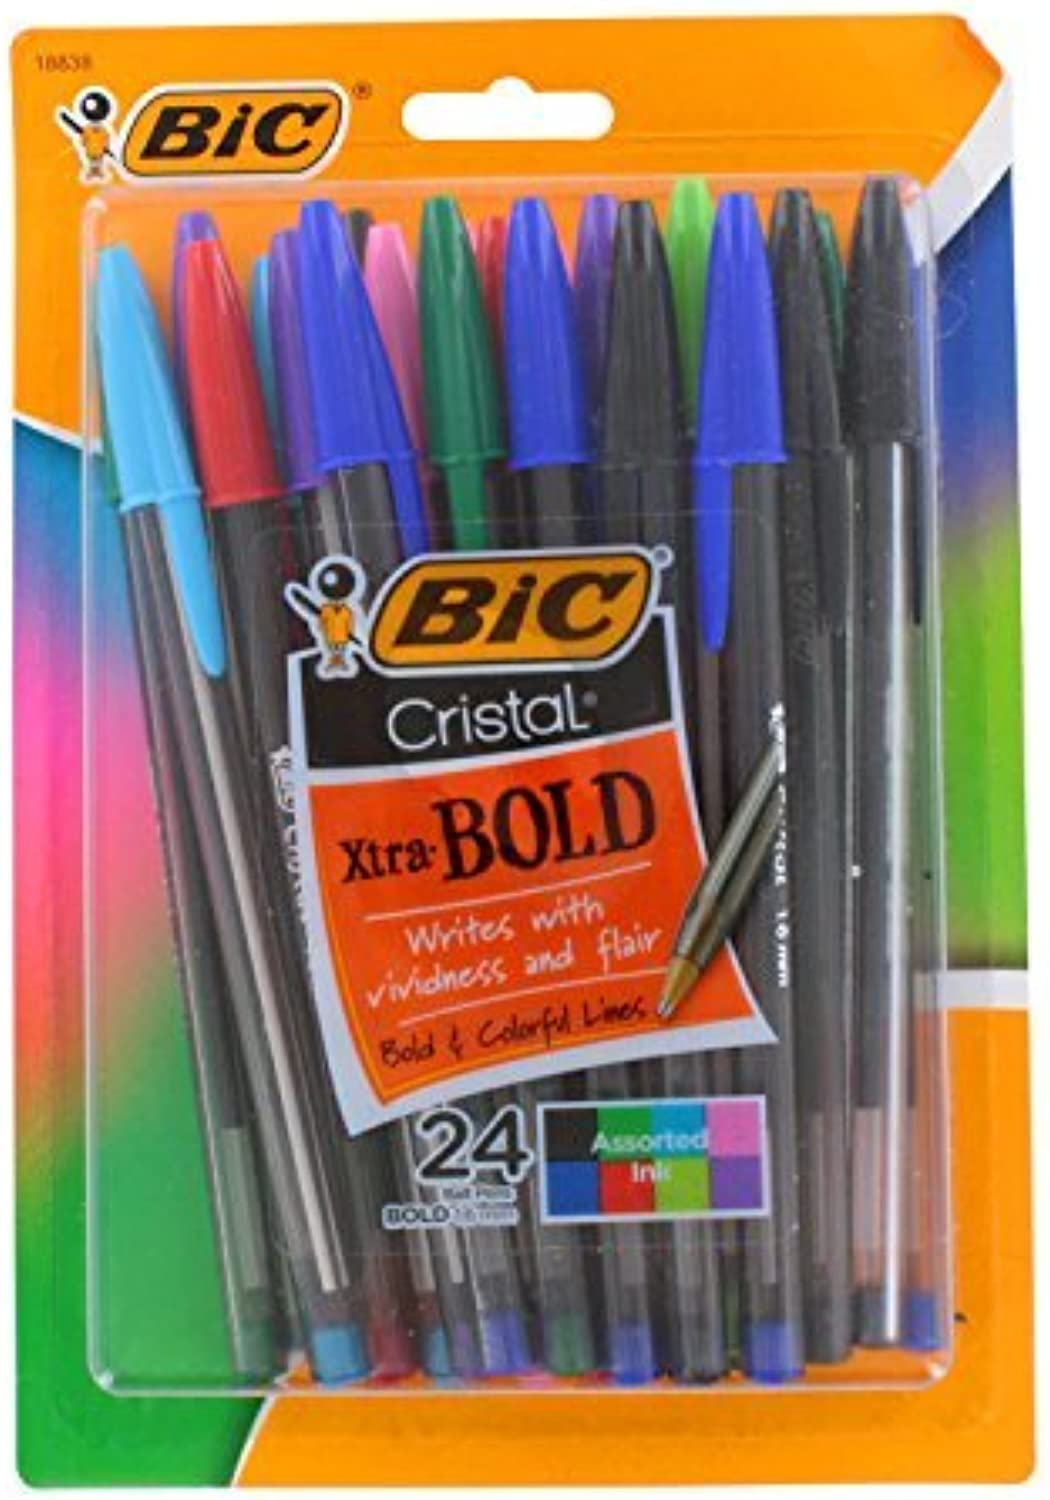 Bic Cristal Xtra Bold Stick Ballpoint Ballpoint Ballpoint Pens, 1.6mm, Bold Point, Assorted Farbes, Pack of 24 by BIC B0141MZW32 | Lebhaft